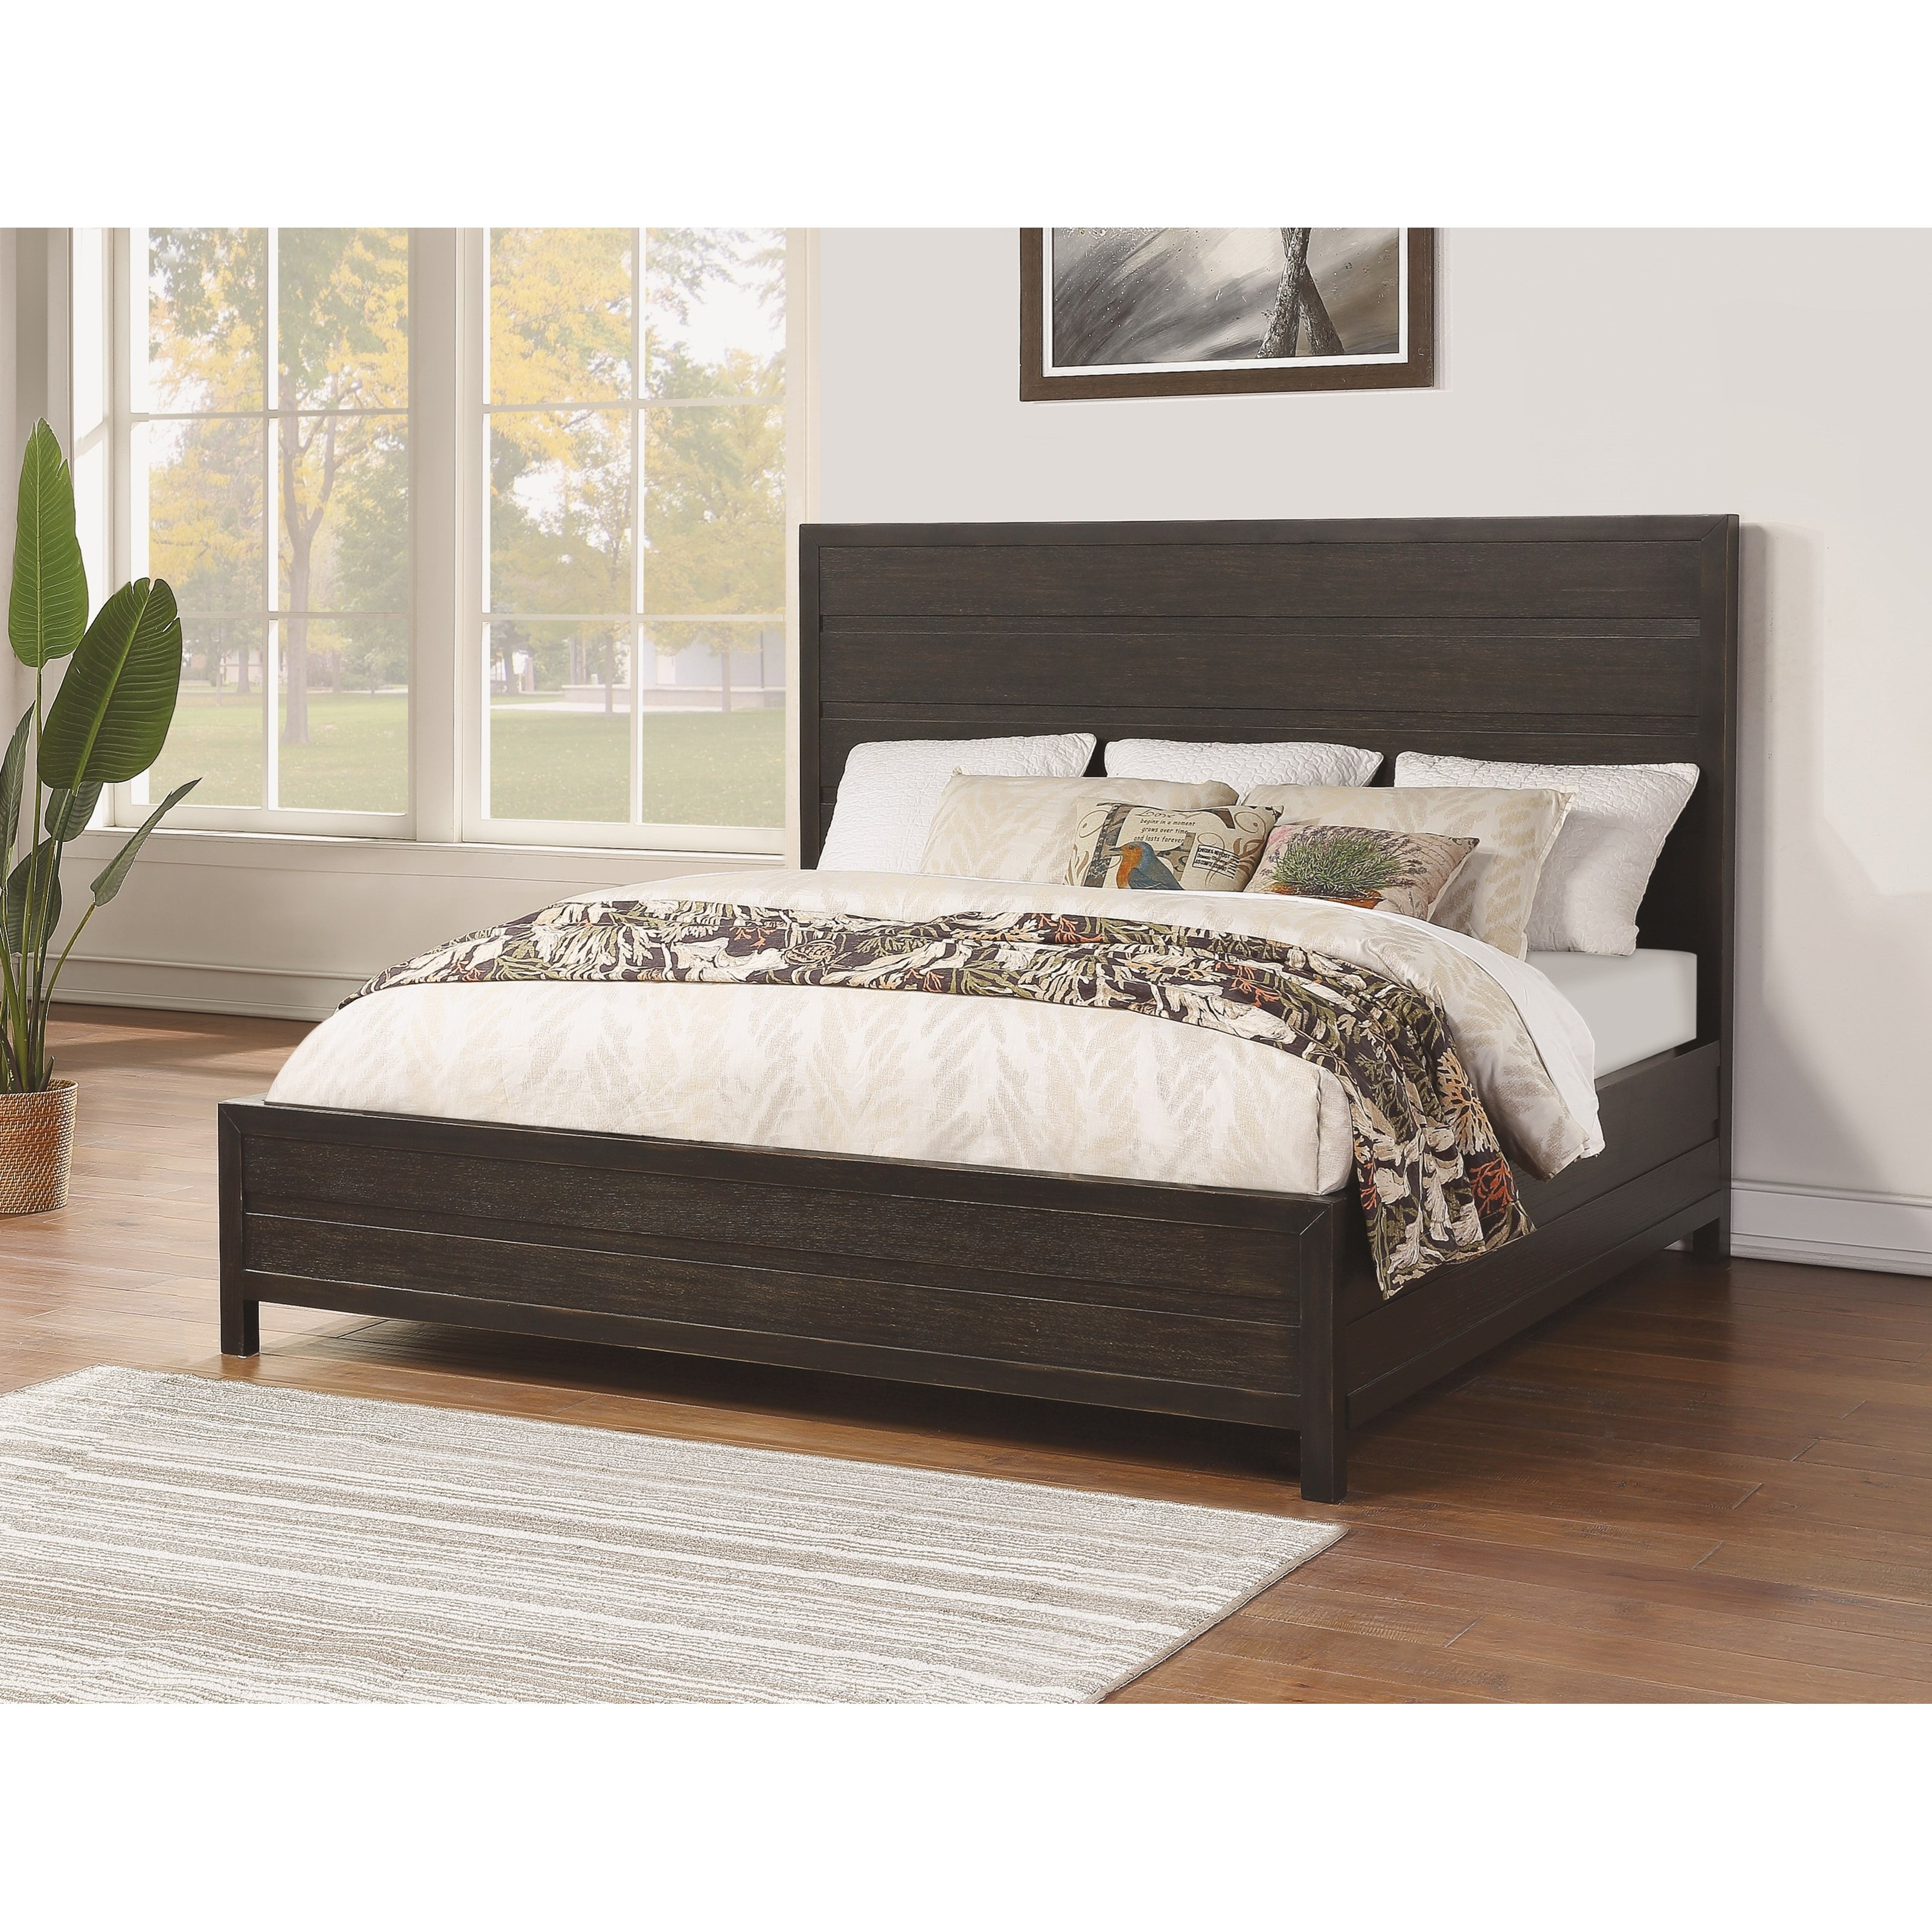 Cologne King Low Profile Bed by Flexsteel at Crowley Furniture & Mattress